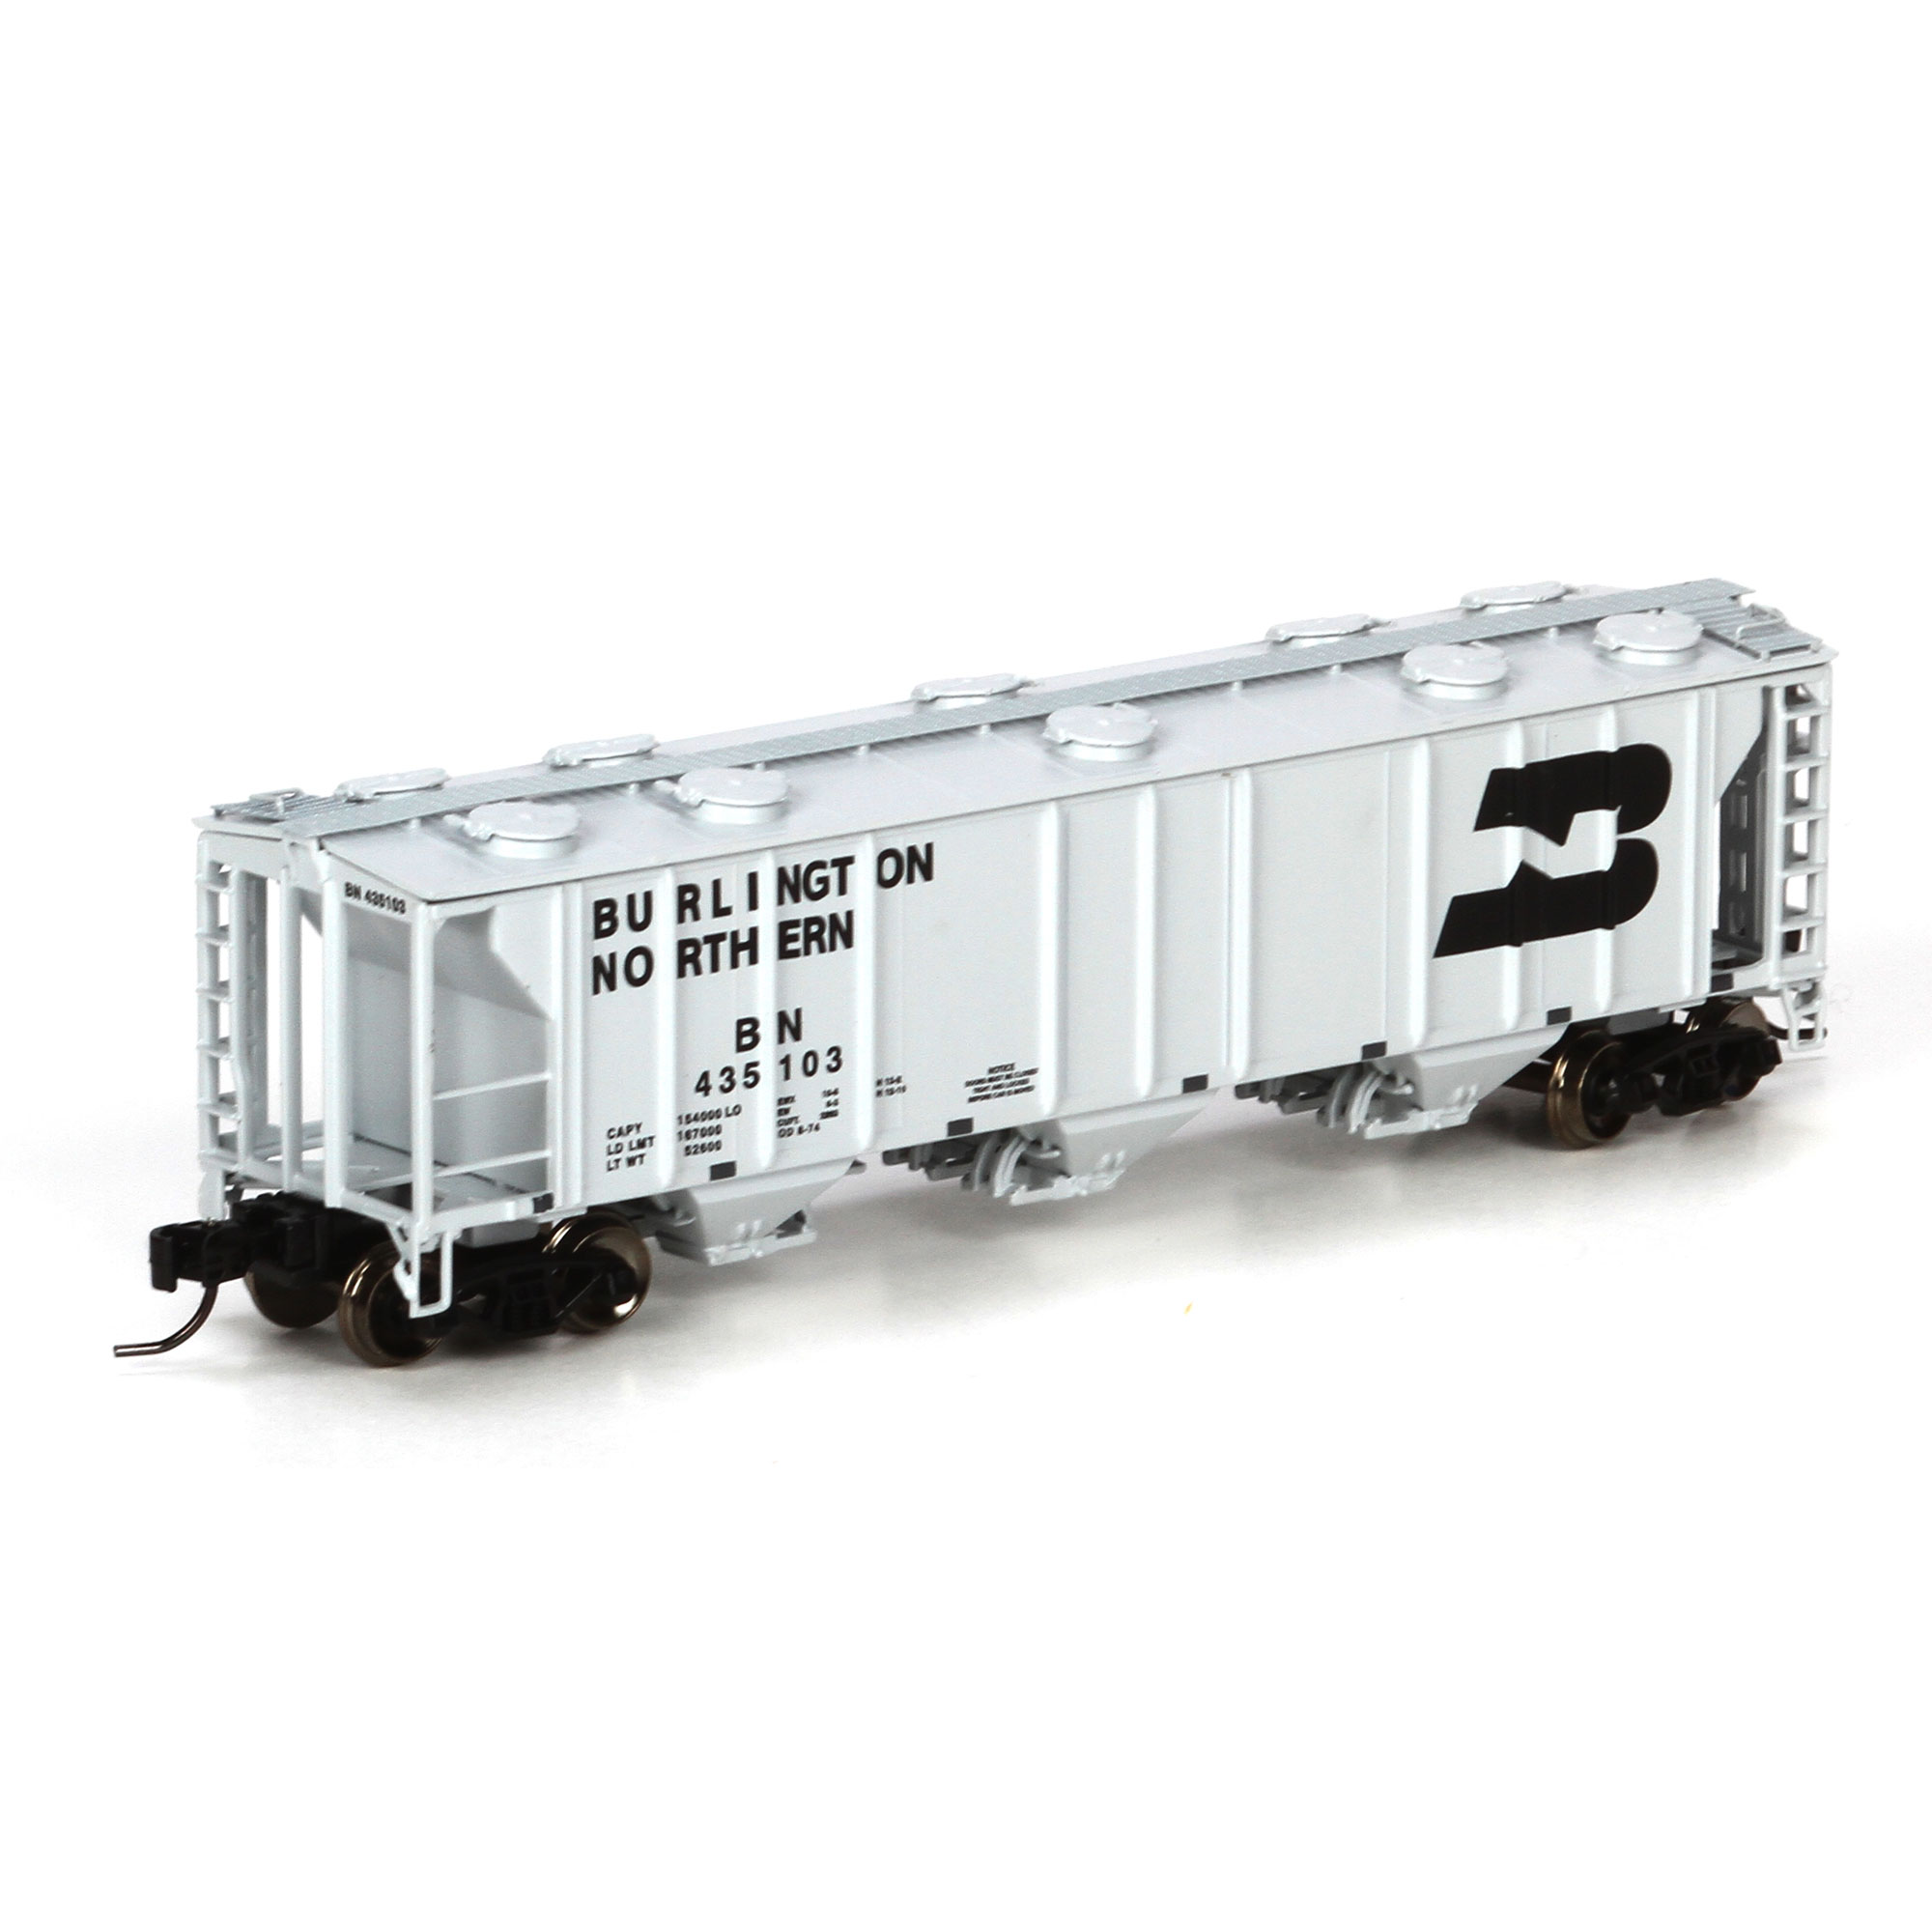 N Scale - Athearn - 23820 - Covered Hopper, 3-Bay, PS2 2893 - Burlington Northern - 435102